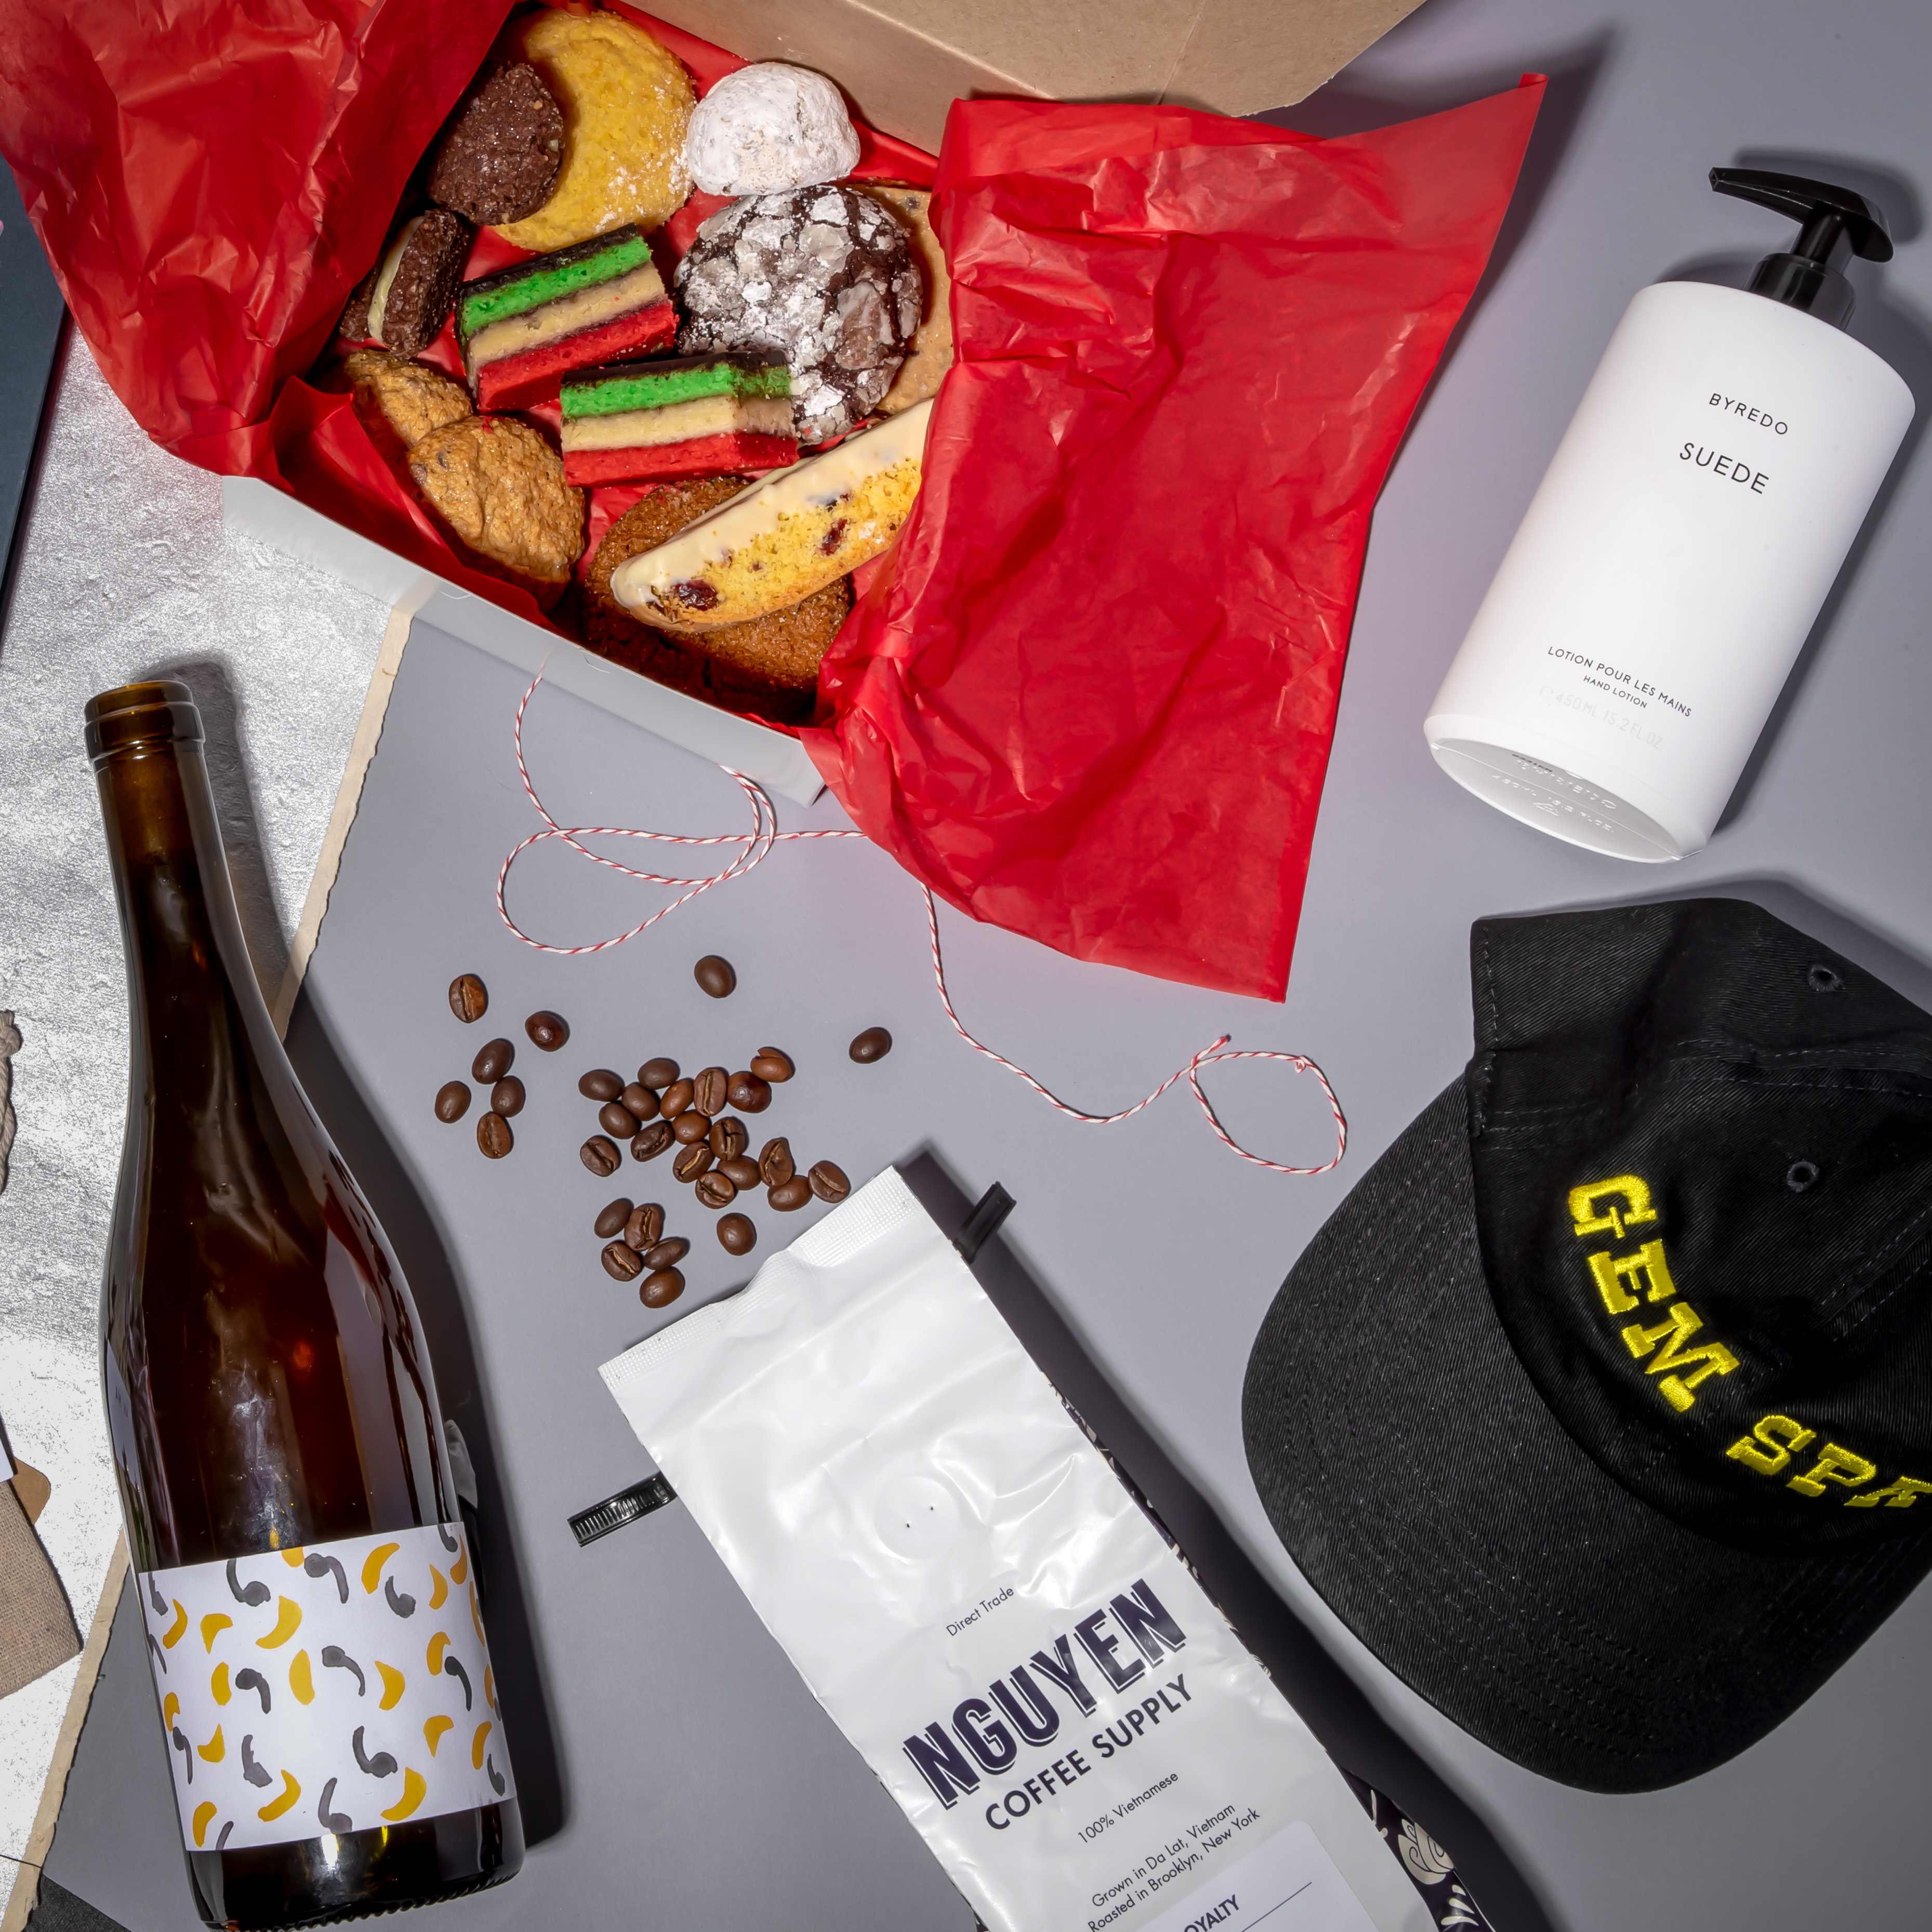 """Various gifts arranged together, including colorful assorted cookies, a white bottle of hand lotion, a black hat saying """"Gem Spa,"""" and a bag of coffee"""